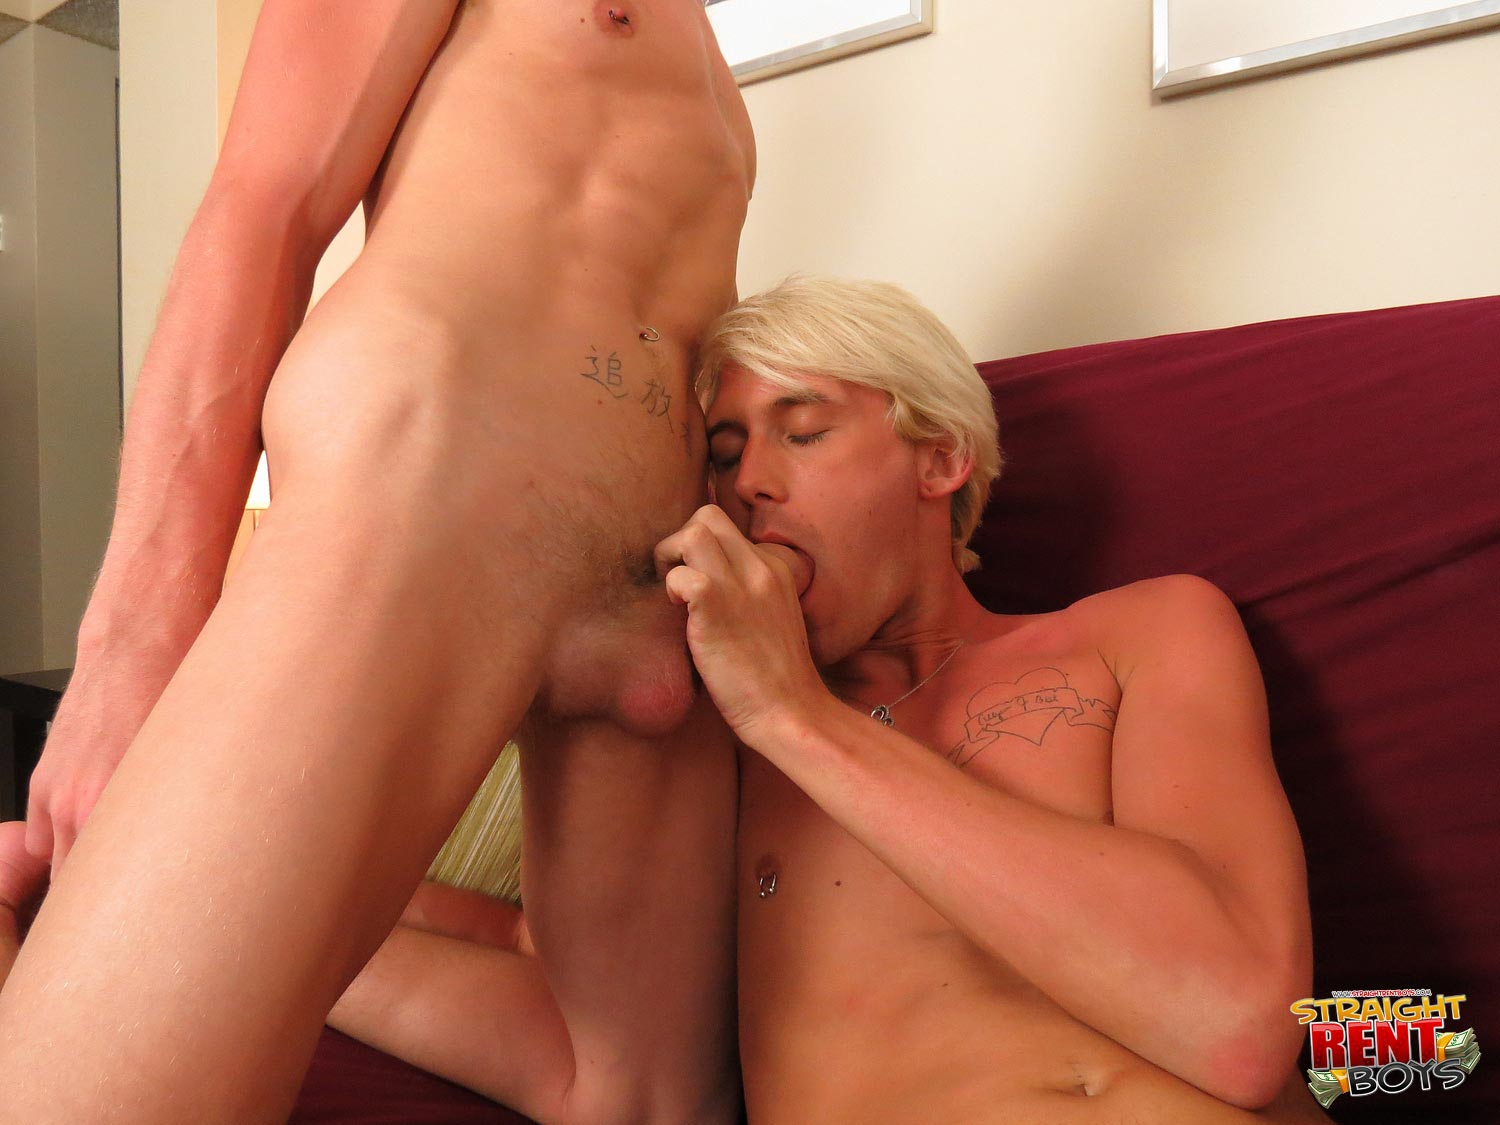 Straight-Rent-Boys-Angel-and-Cody-Big-Cock-Straight-Twinks-Fucking-Amateur-Gay-Porn-13 Amateur Straight Rent Boy With A Huge Cock Fucks Some Gay Ass